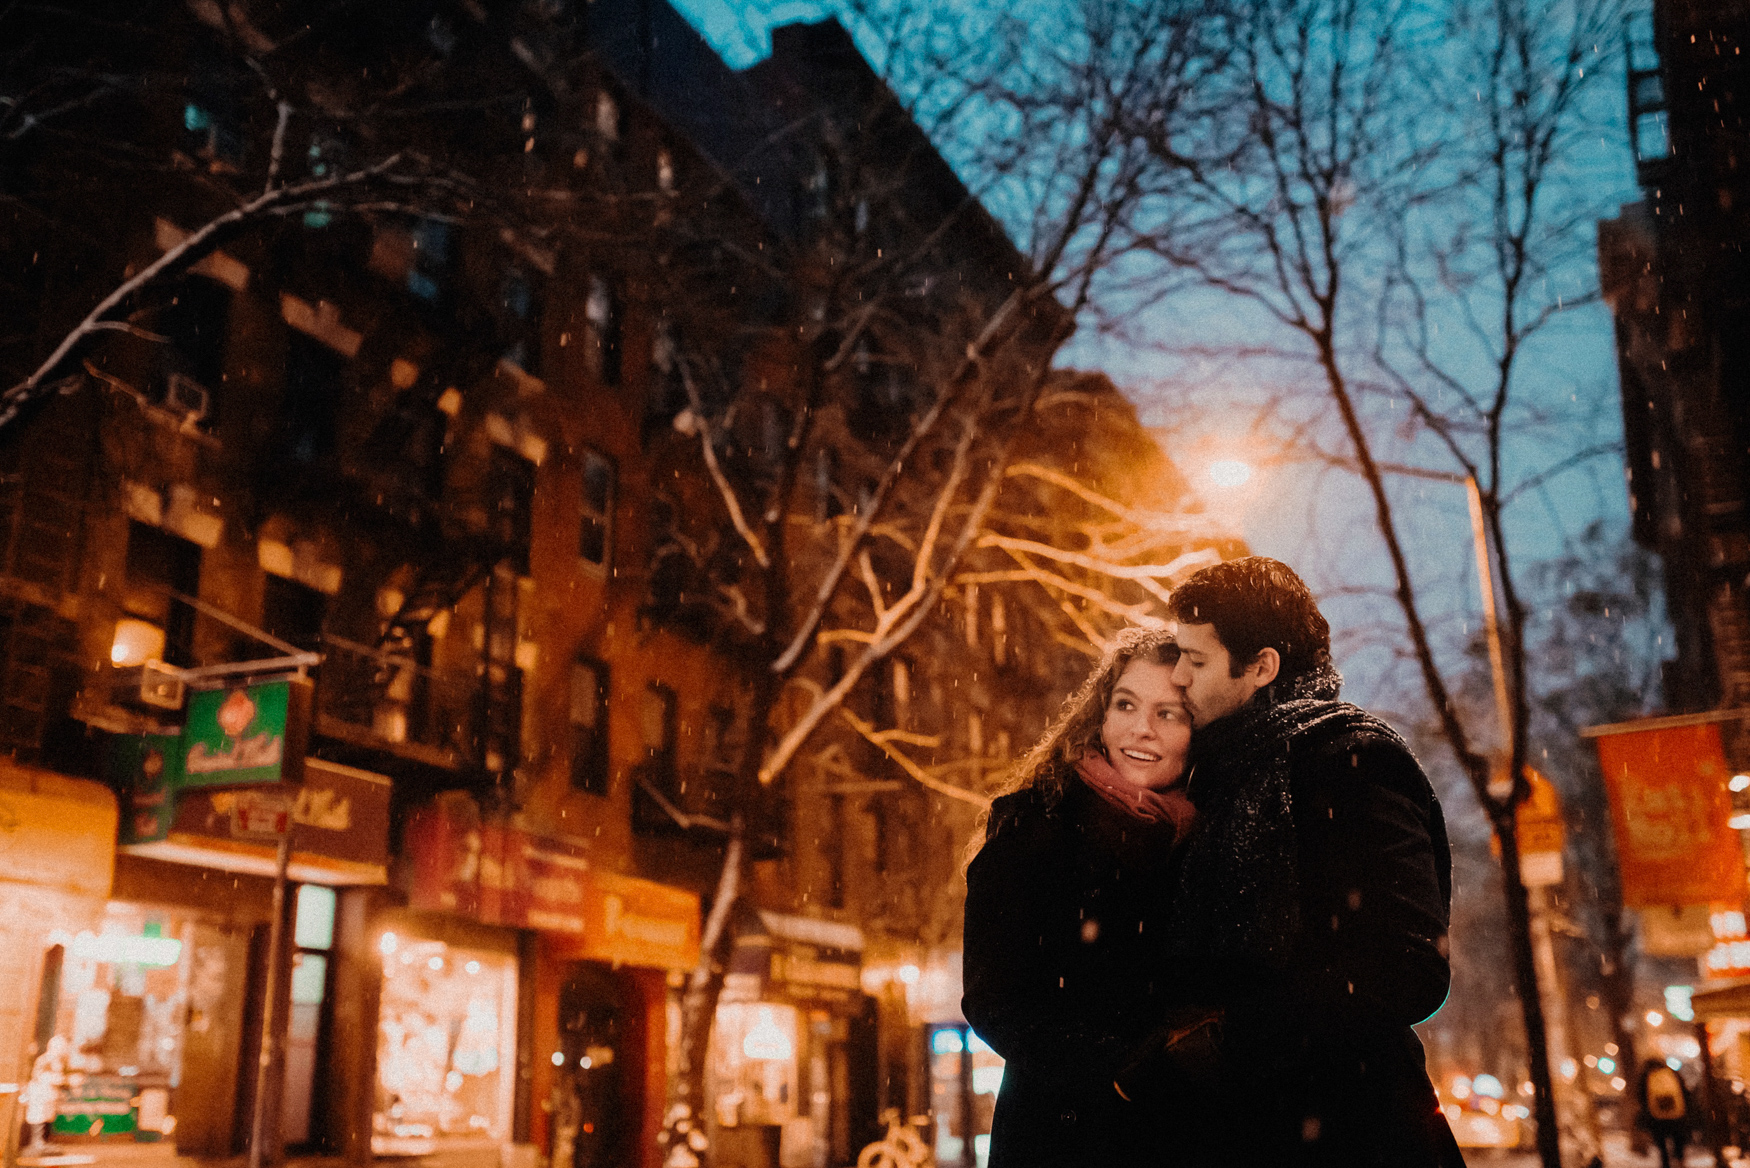 nyc winter snowy manthattan engagement session 034.jpg